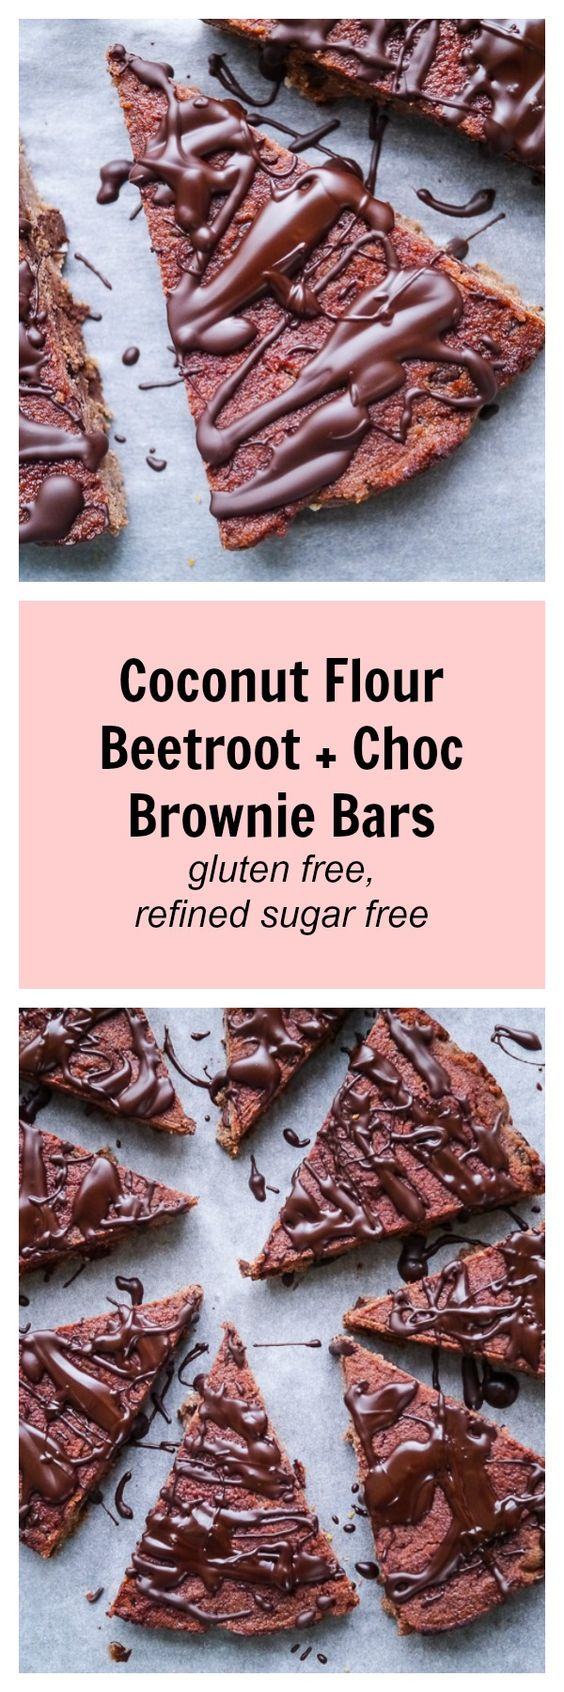 These chocolate brownie bars are made with coconut flour, beetroot and cacao, they are super delicious but also super good for you! High in fibre, gluten free, dairy free and refined sugar free. Amazing!